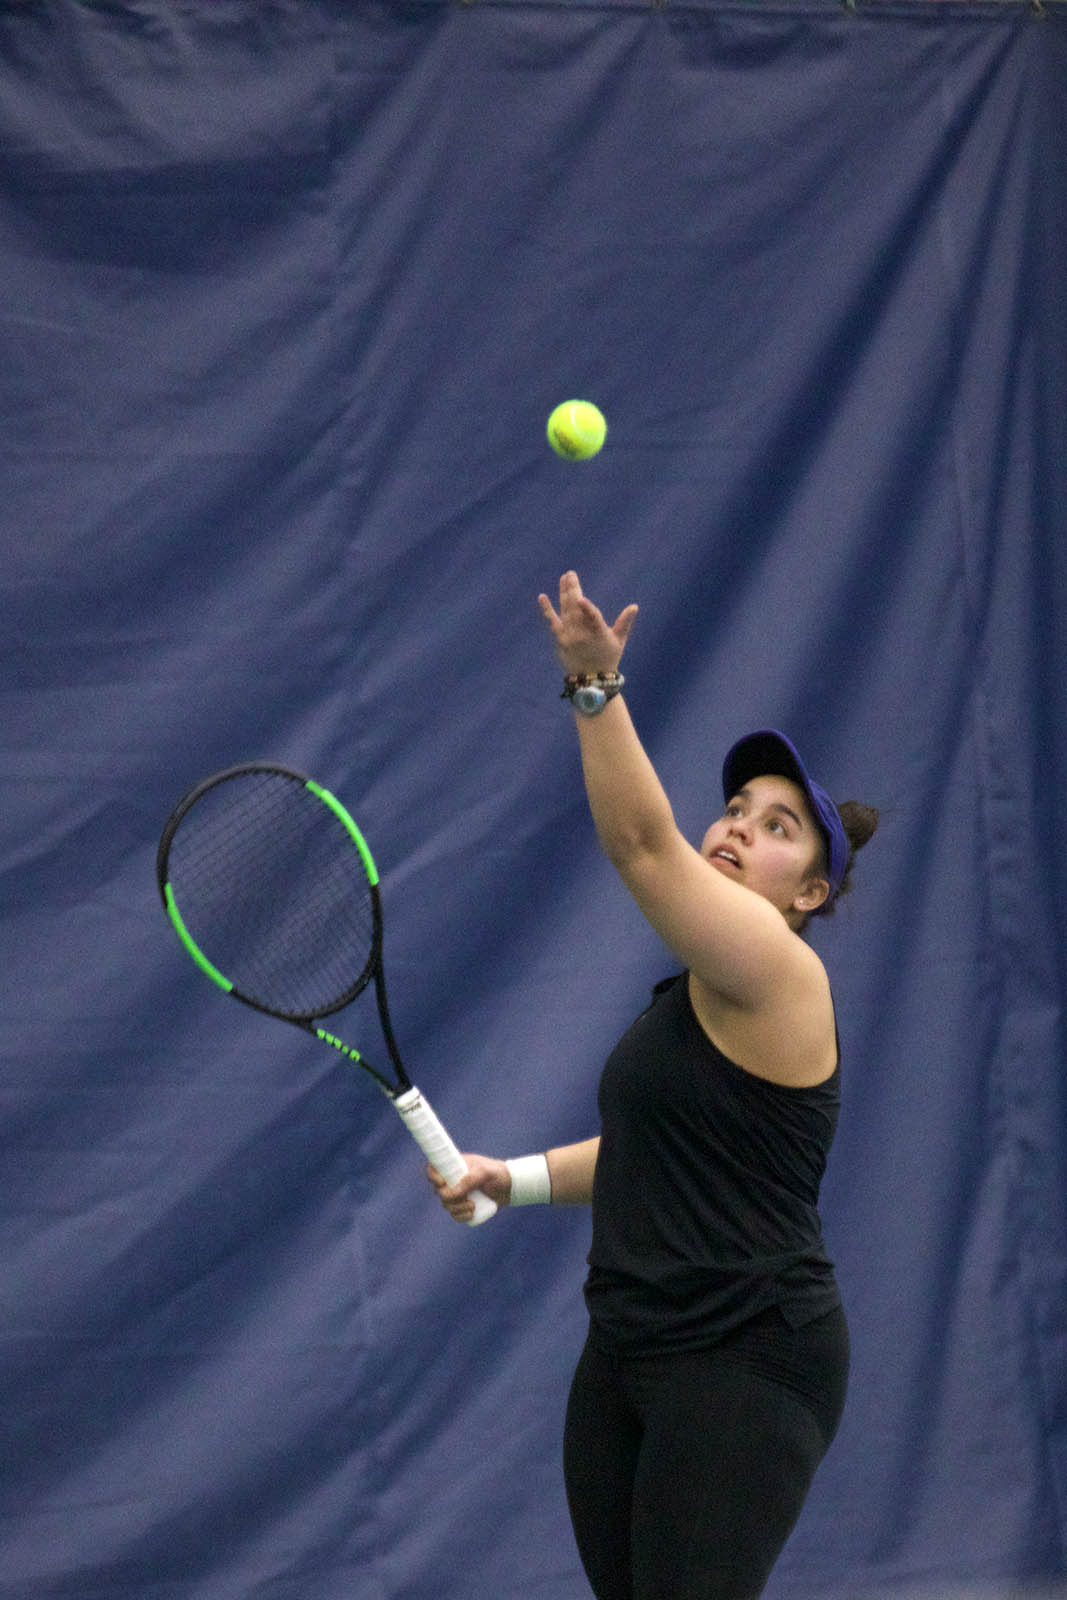 Sabrina Barboza holds her tennis racket and throws a tennis ball upwards in a serve with a blue curtain in the background.